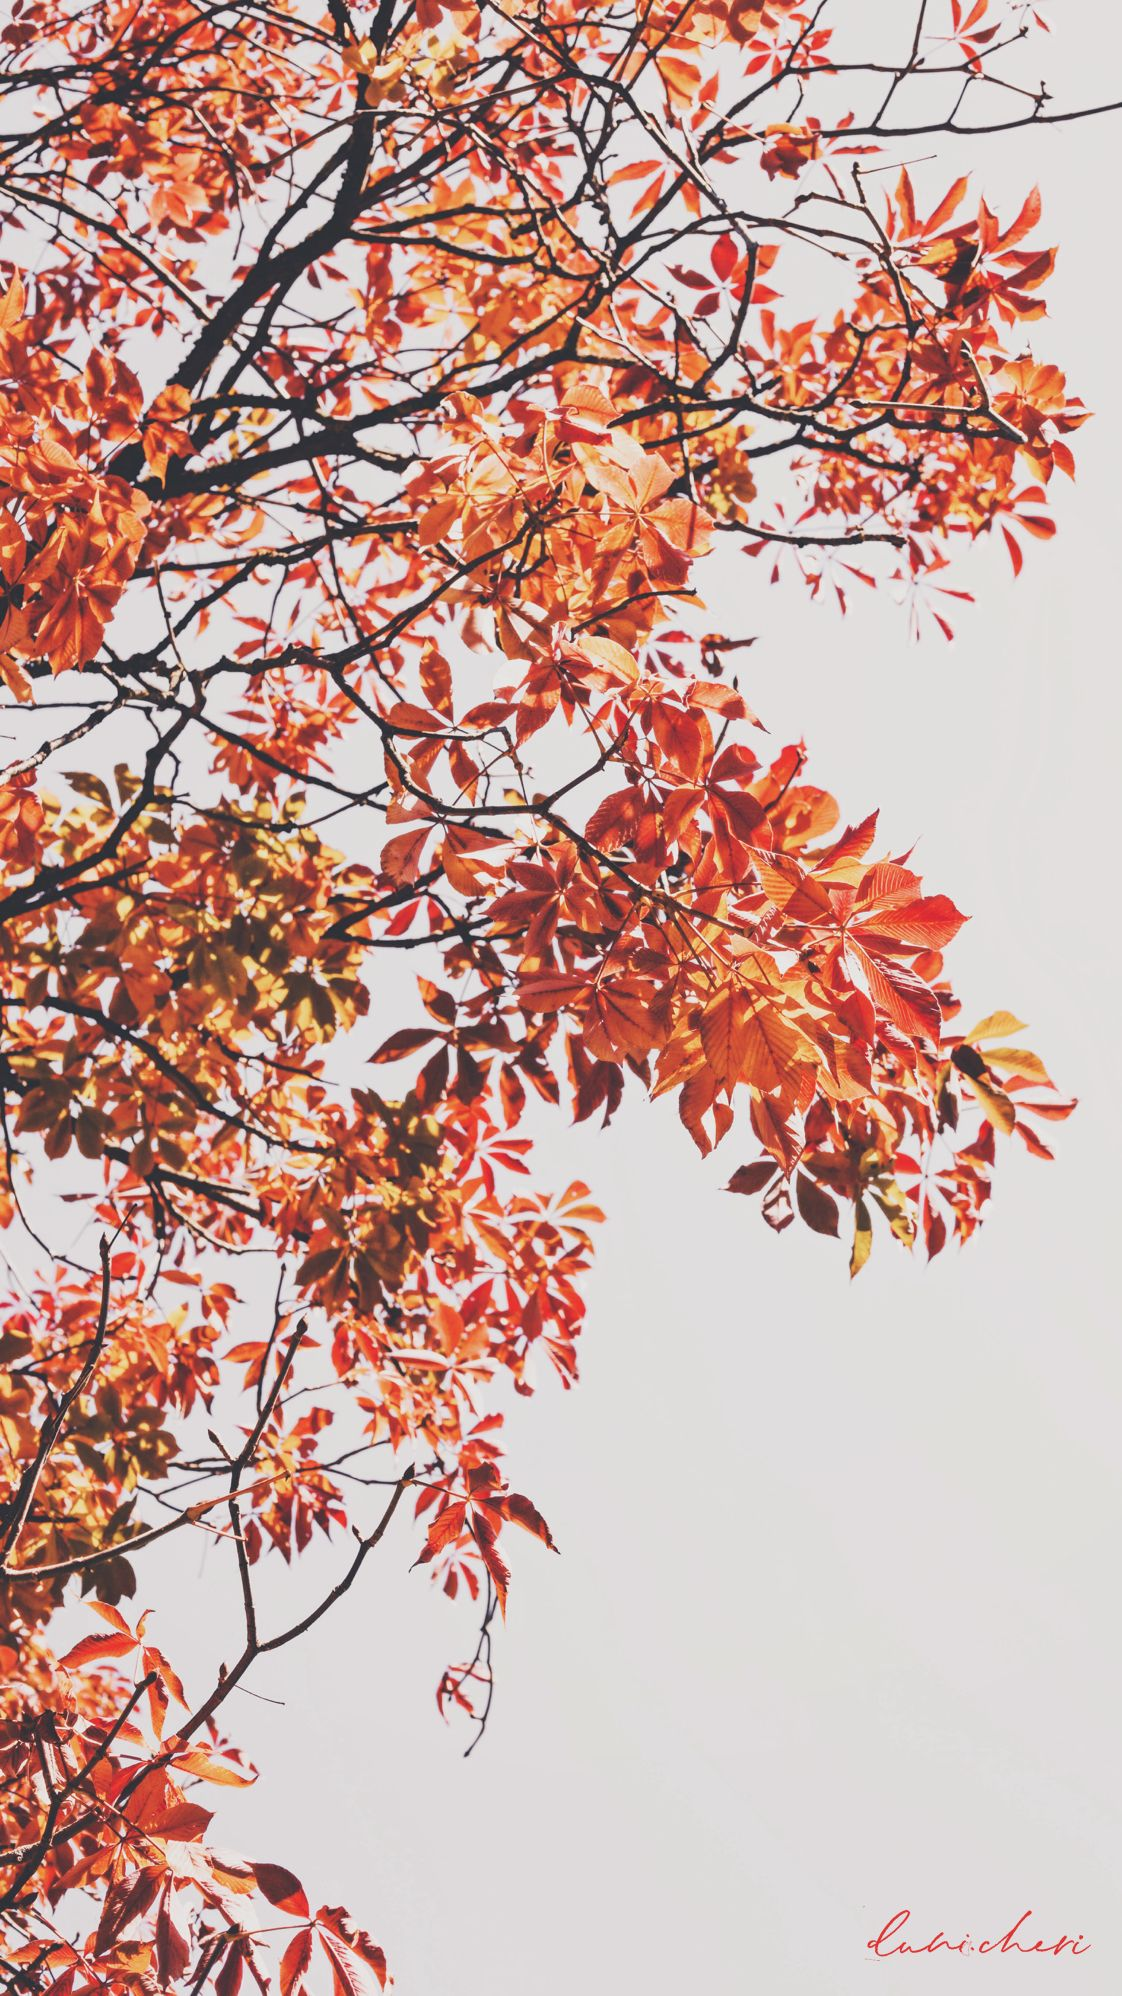 Free Download: Autumn Wallpaper ♥ Desktop & Mobile #fallwallpaperiphone